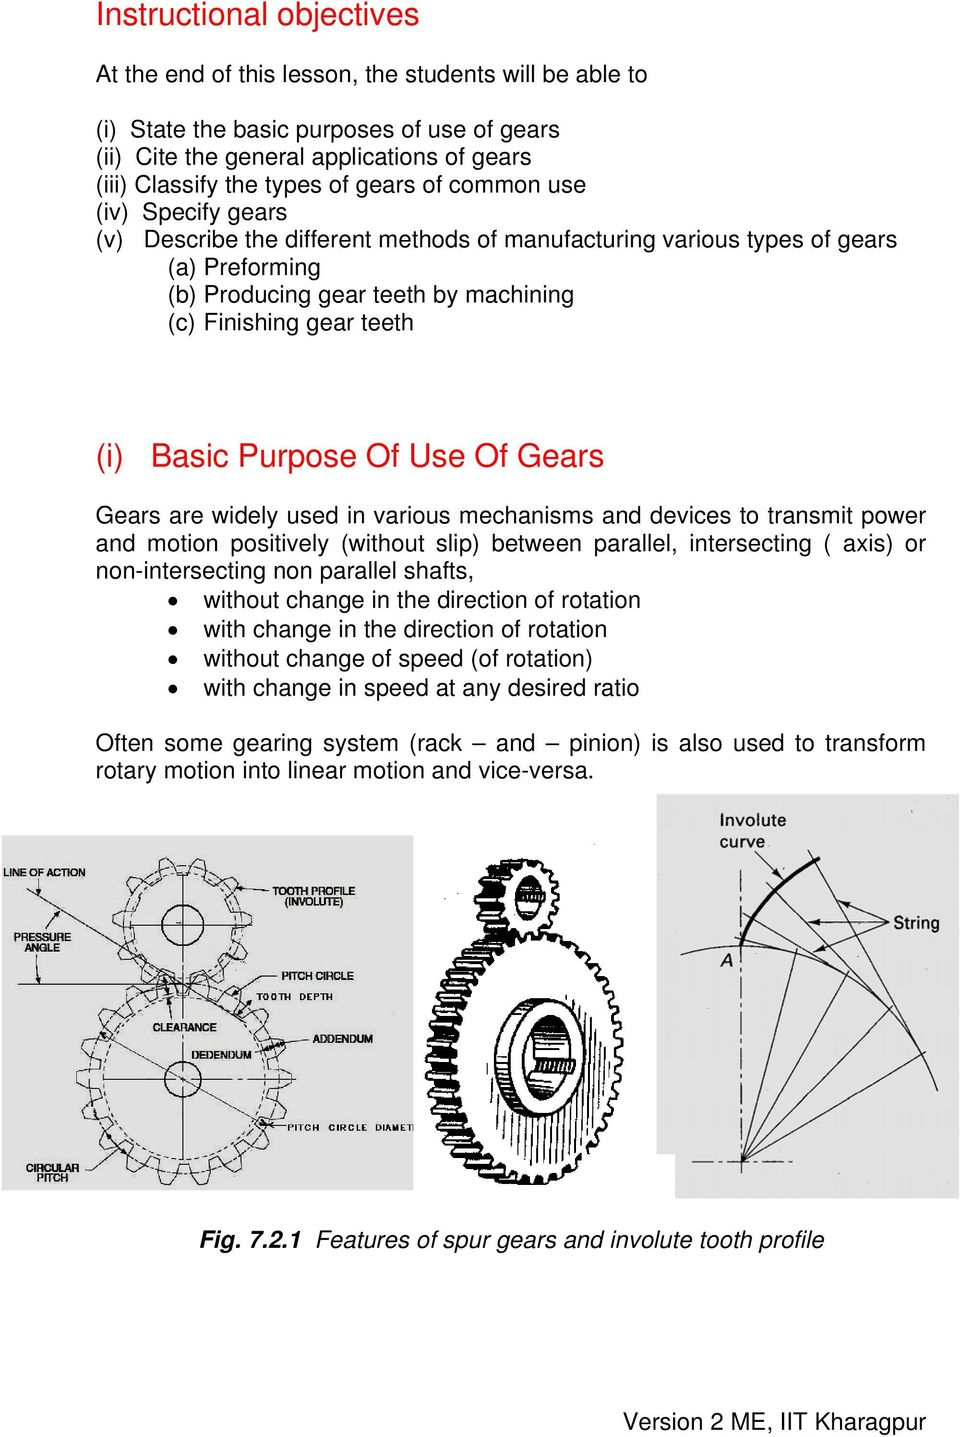 Basic Purpose Of Use Of Gears Gears are widely used in various mechanisms and devices to transmit power and motion positively (without slip) between parallel, intersecting ( axis) or non-intersecting